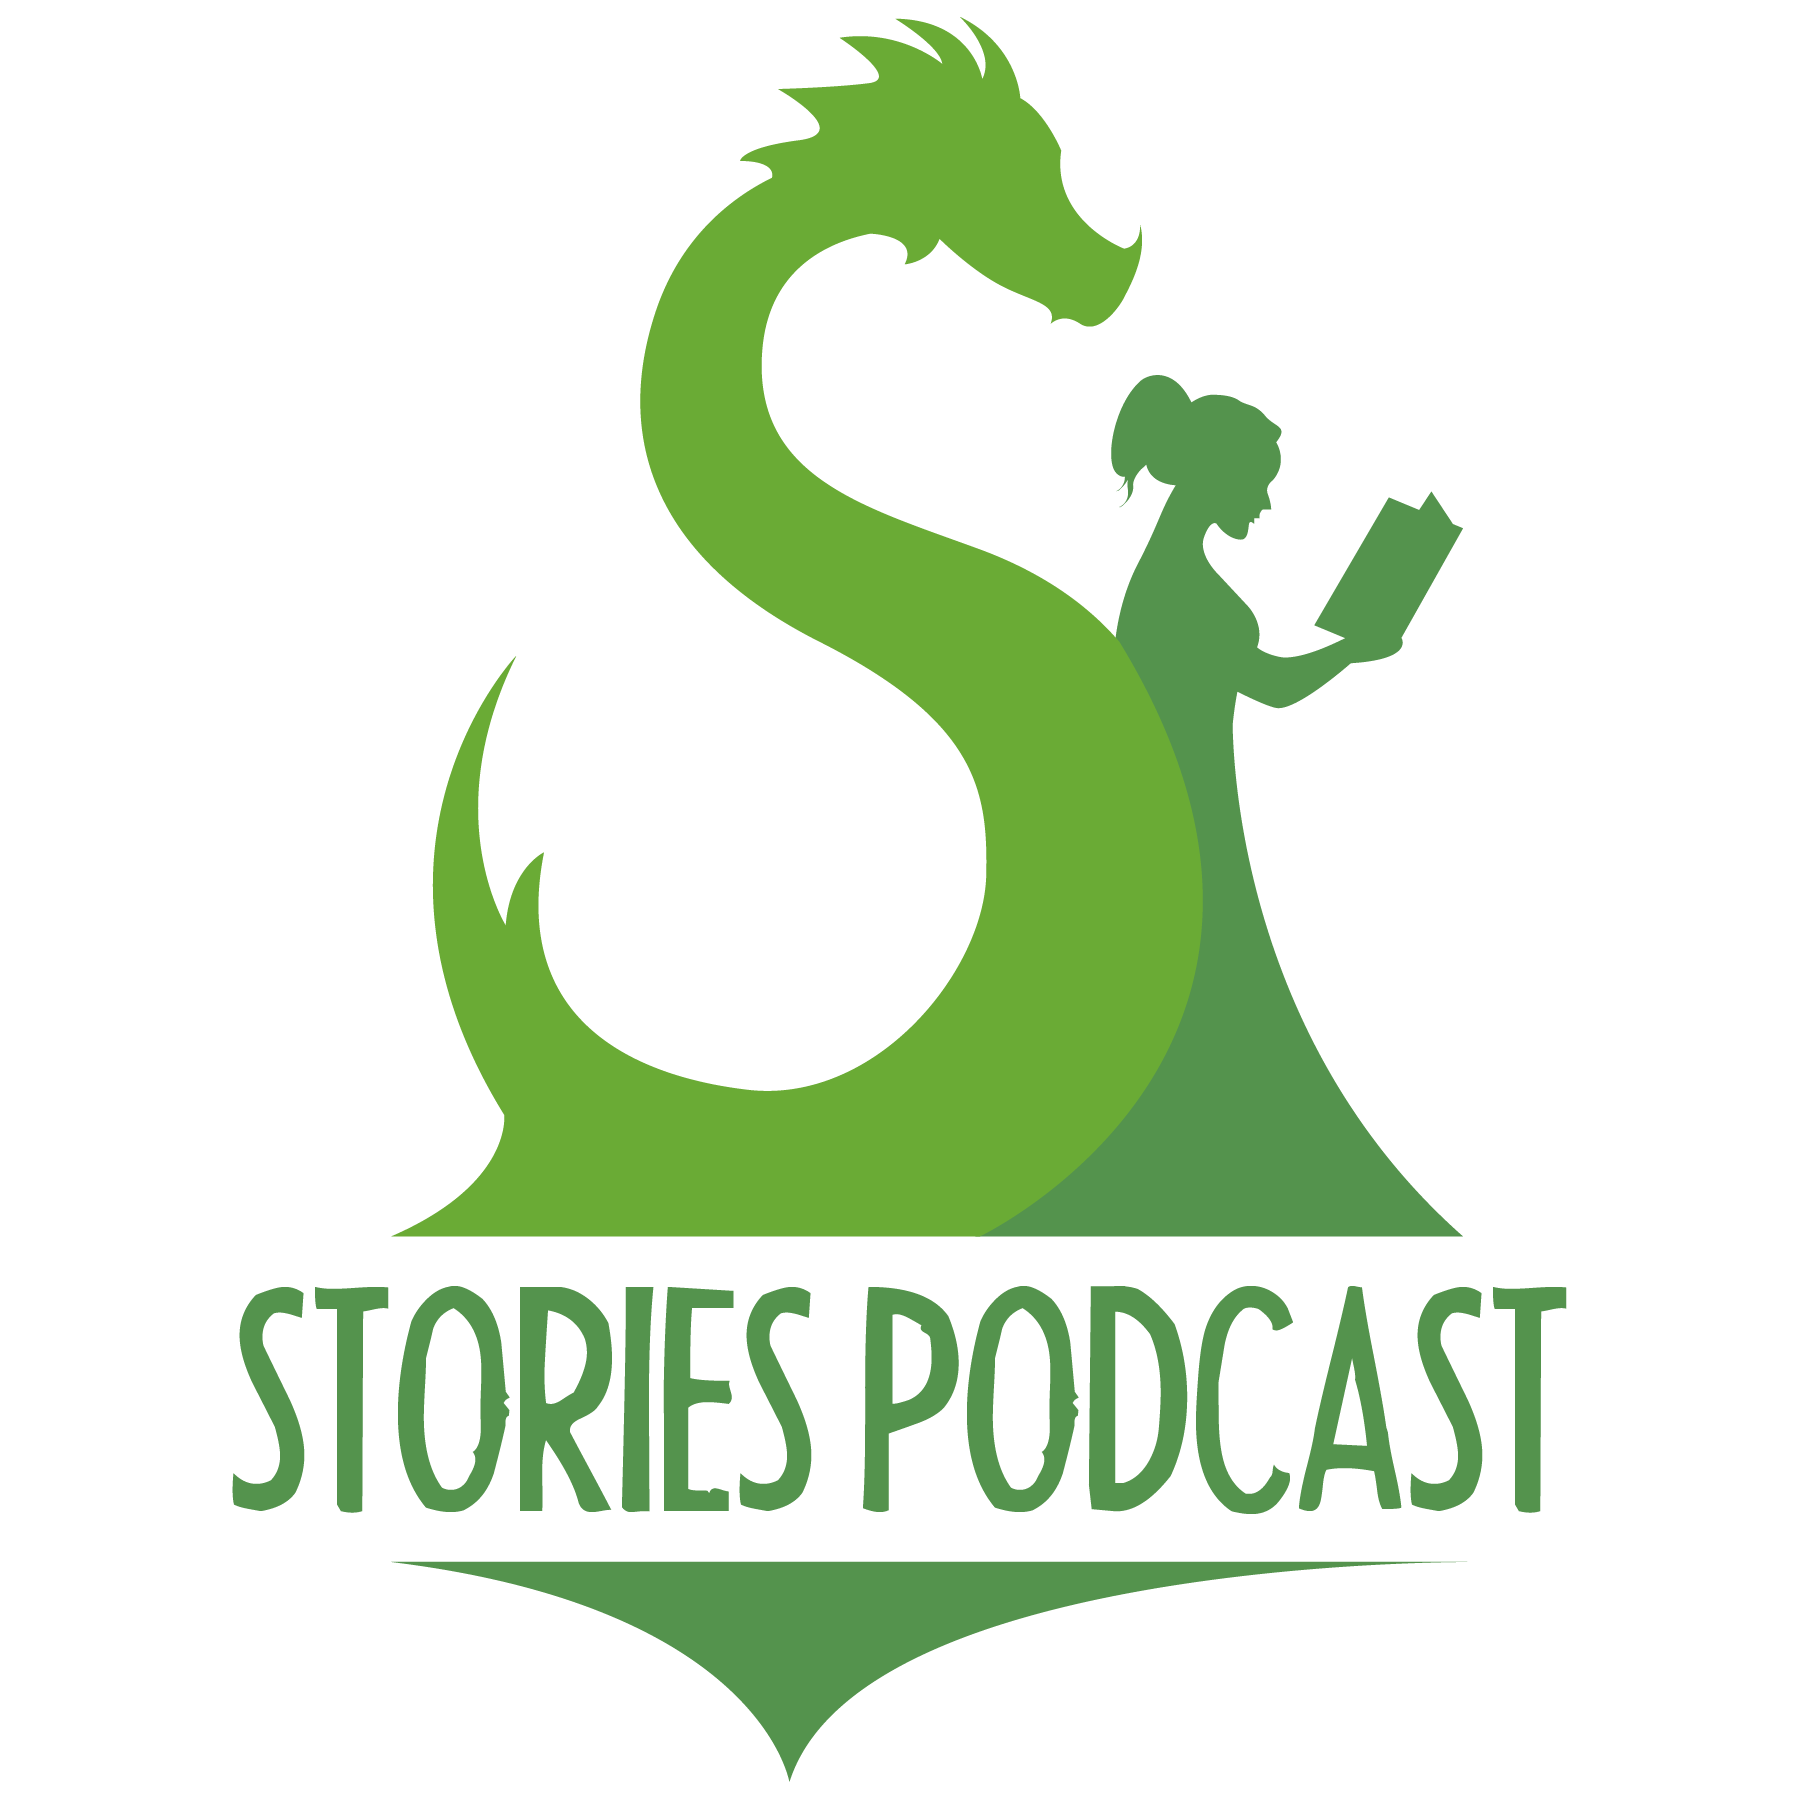 Stories Podcast | Free Kids Stories for Children and Families